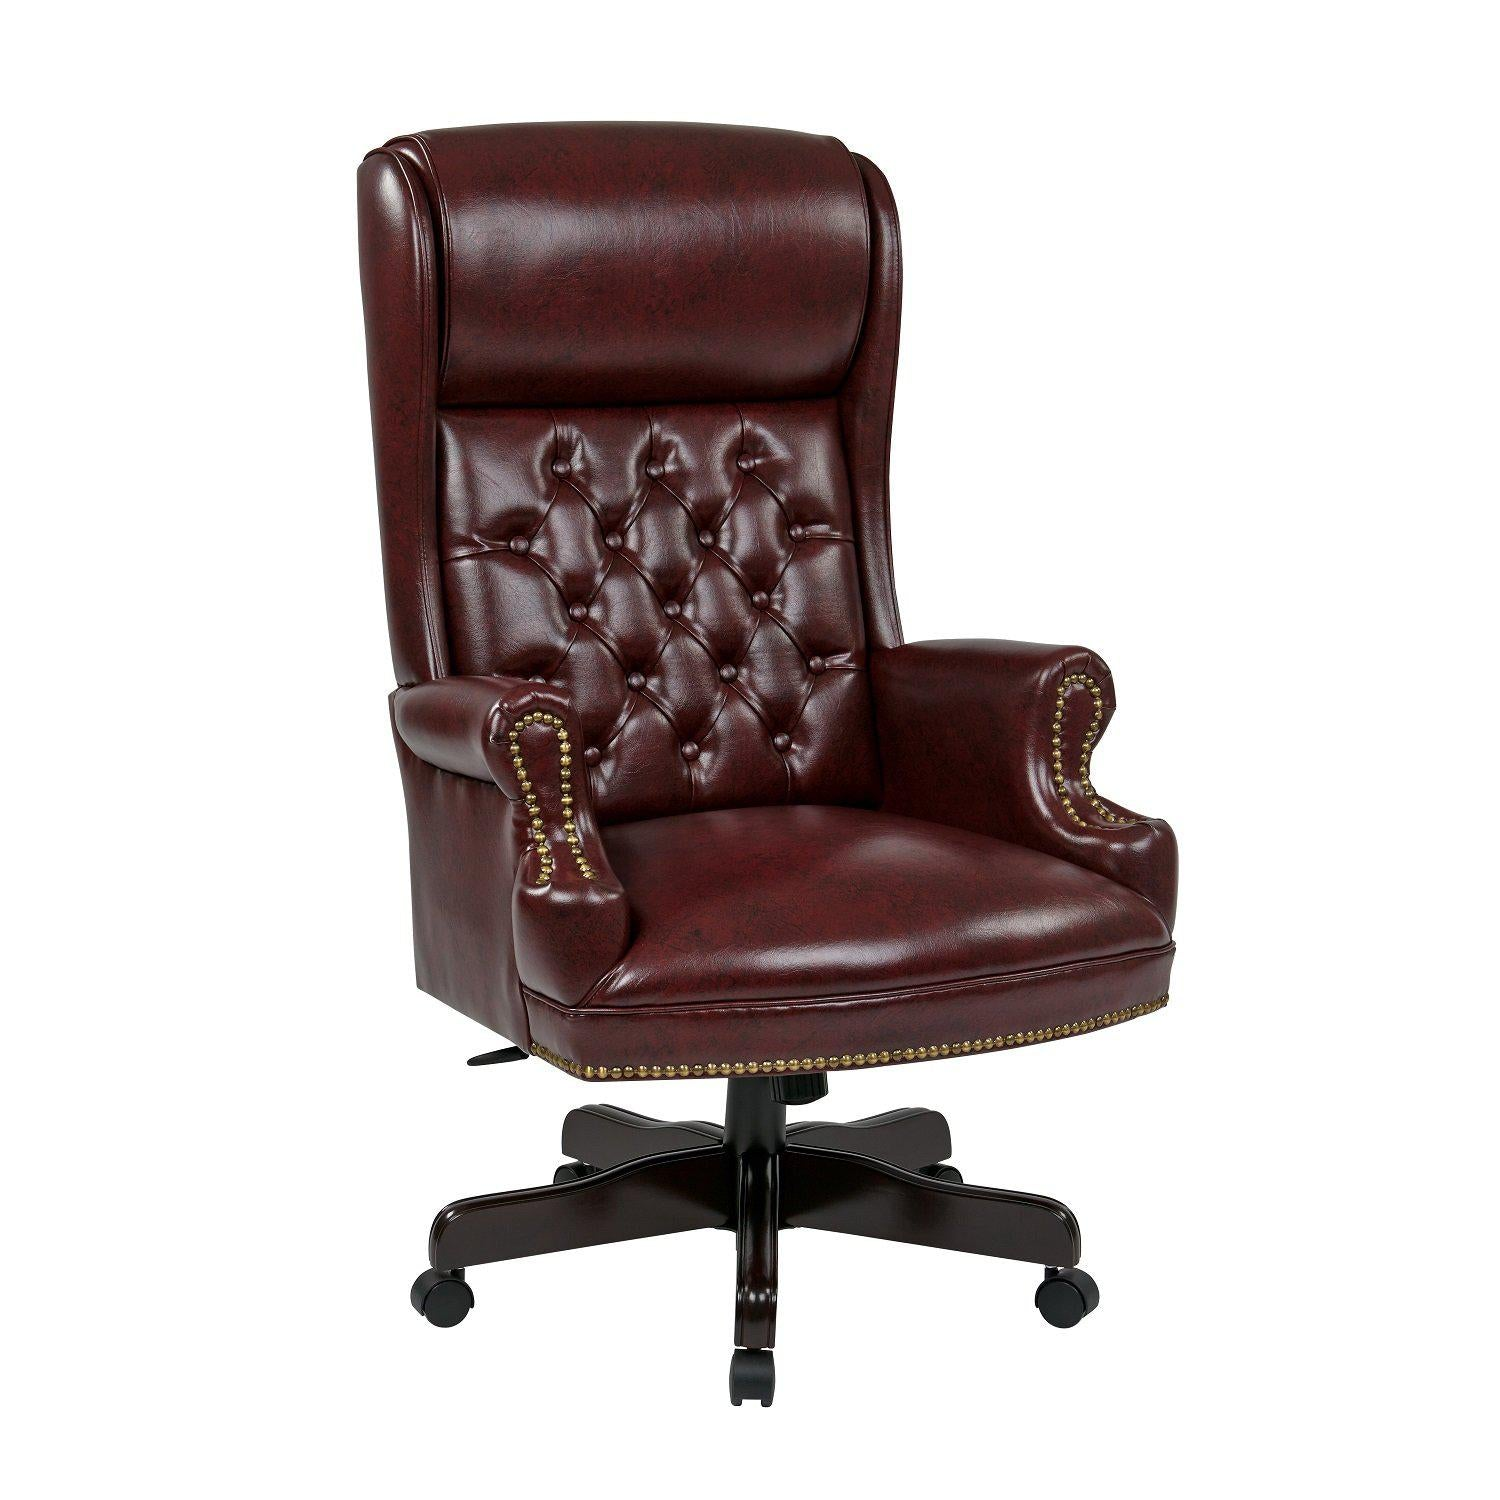 Deluxe High Back Traditional Executive Chair with Headrest